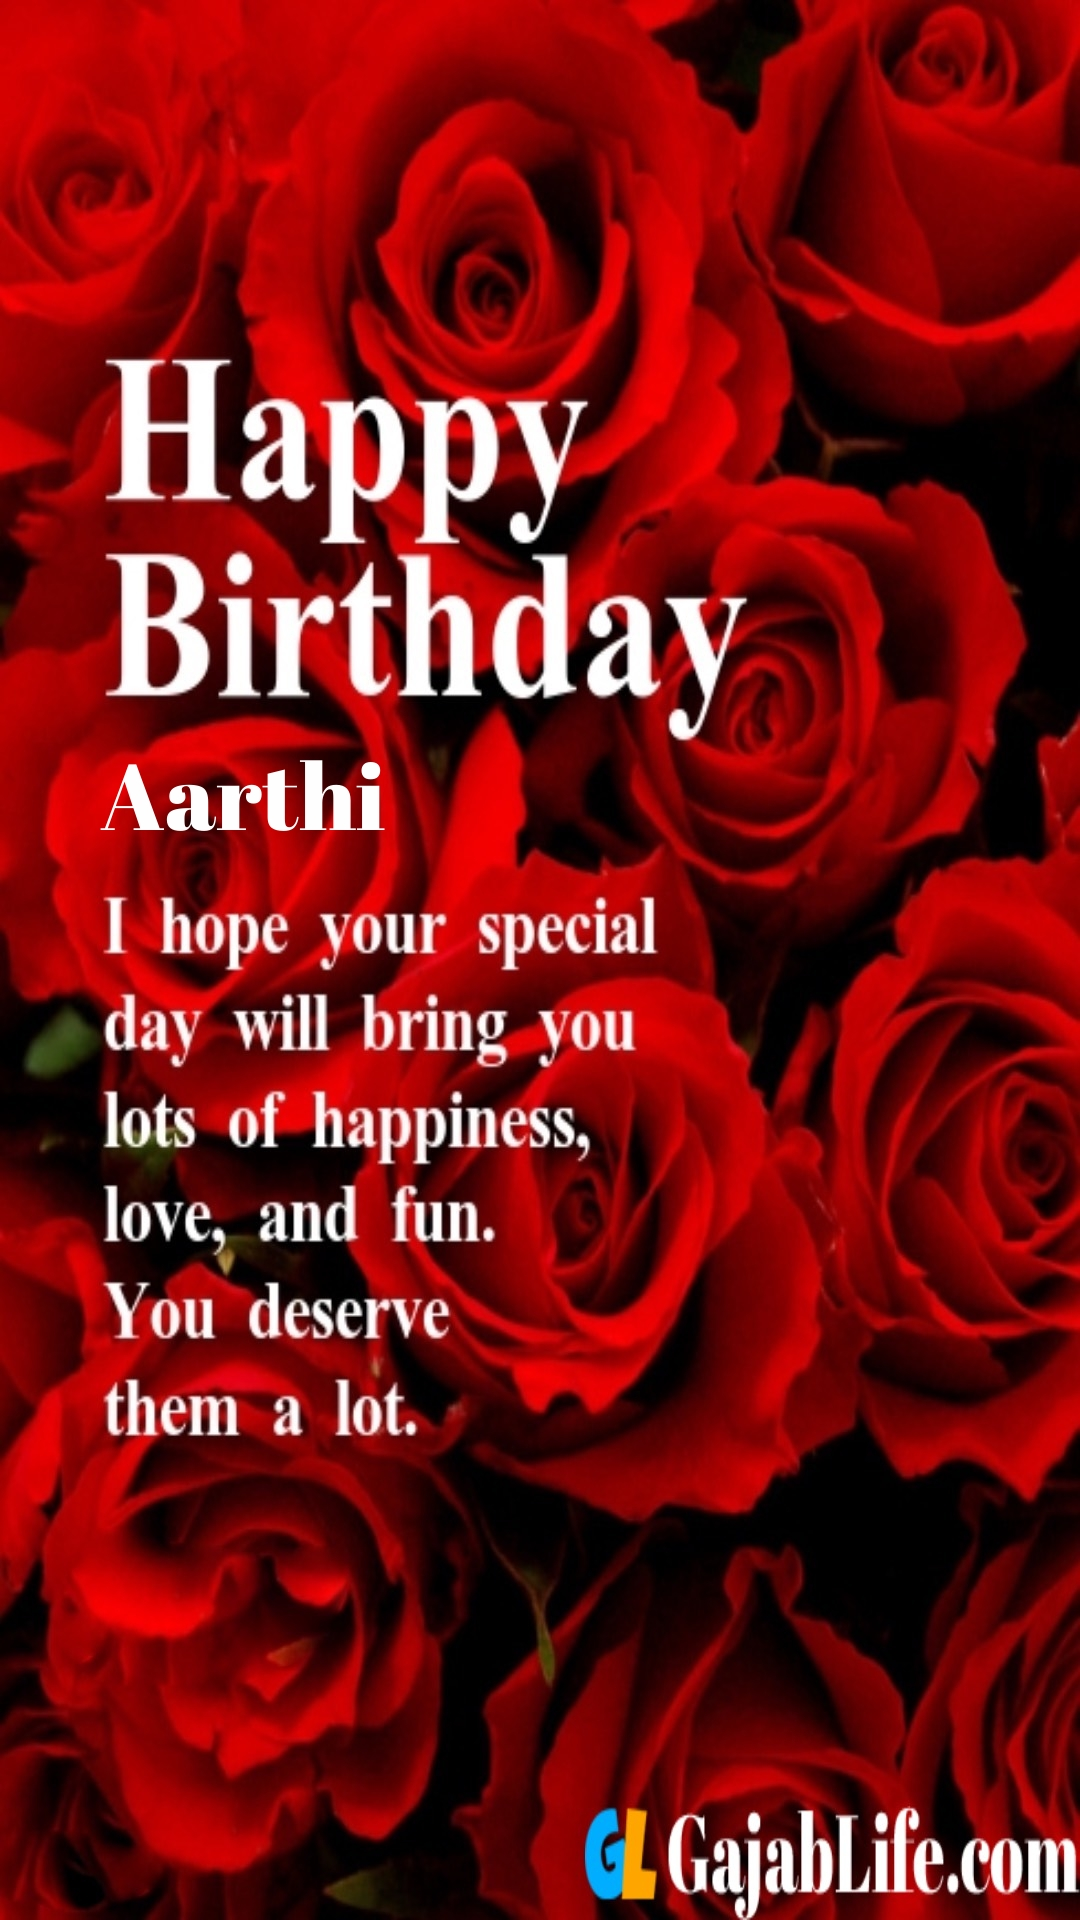 Aarthi birthday greeting card with rose & love